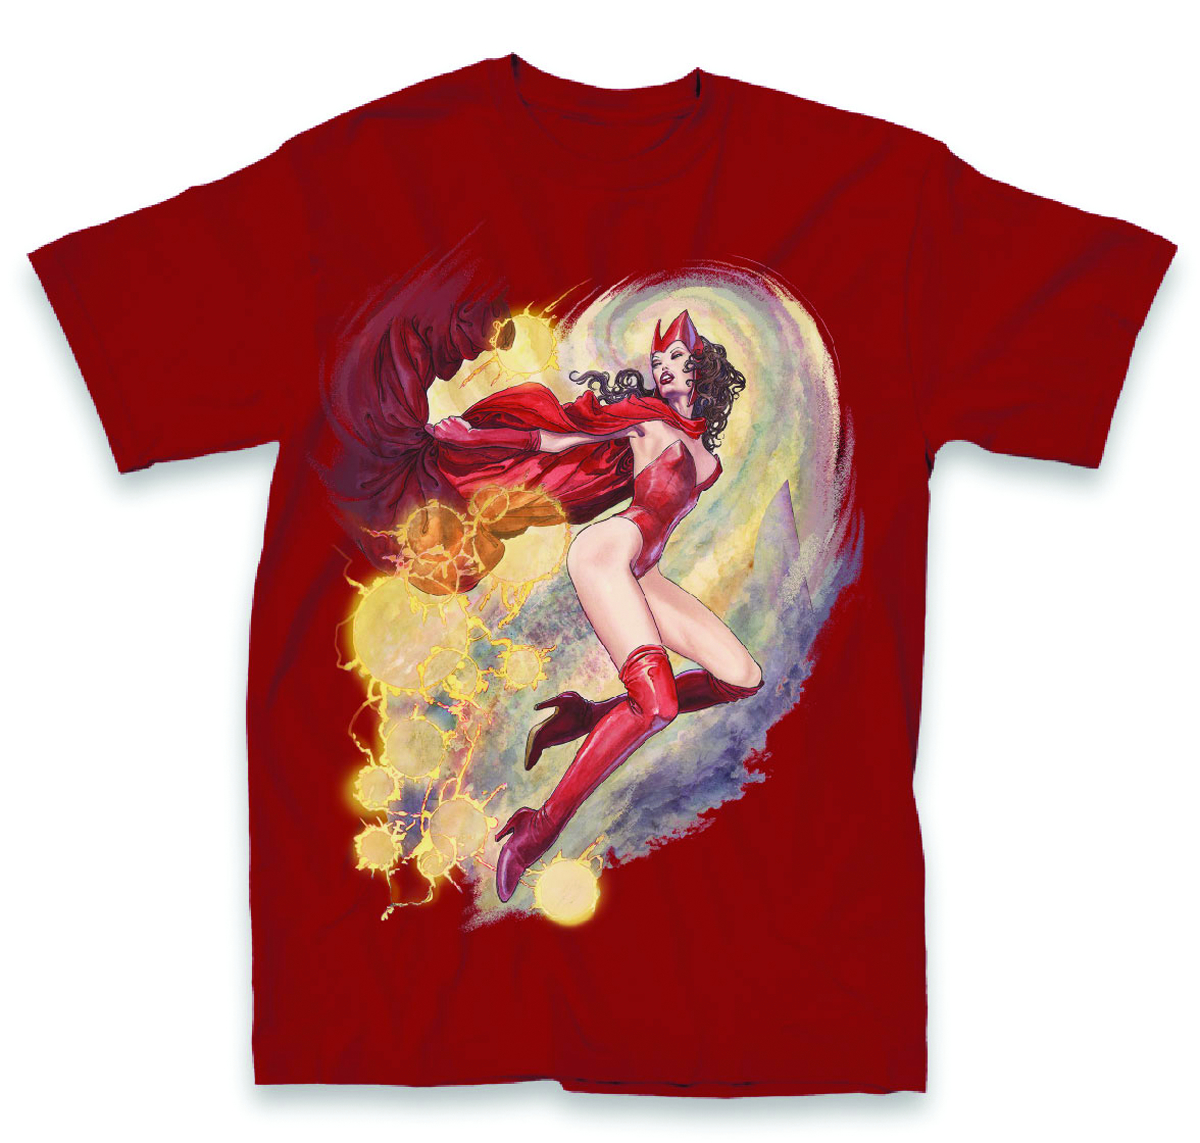 AVENGERS SCARLET WITCH PX CARDINAL T/S LG